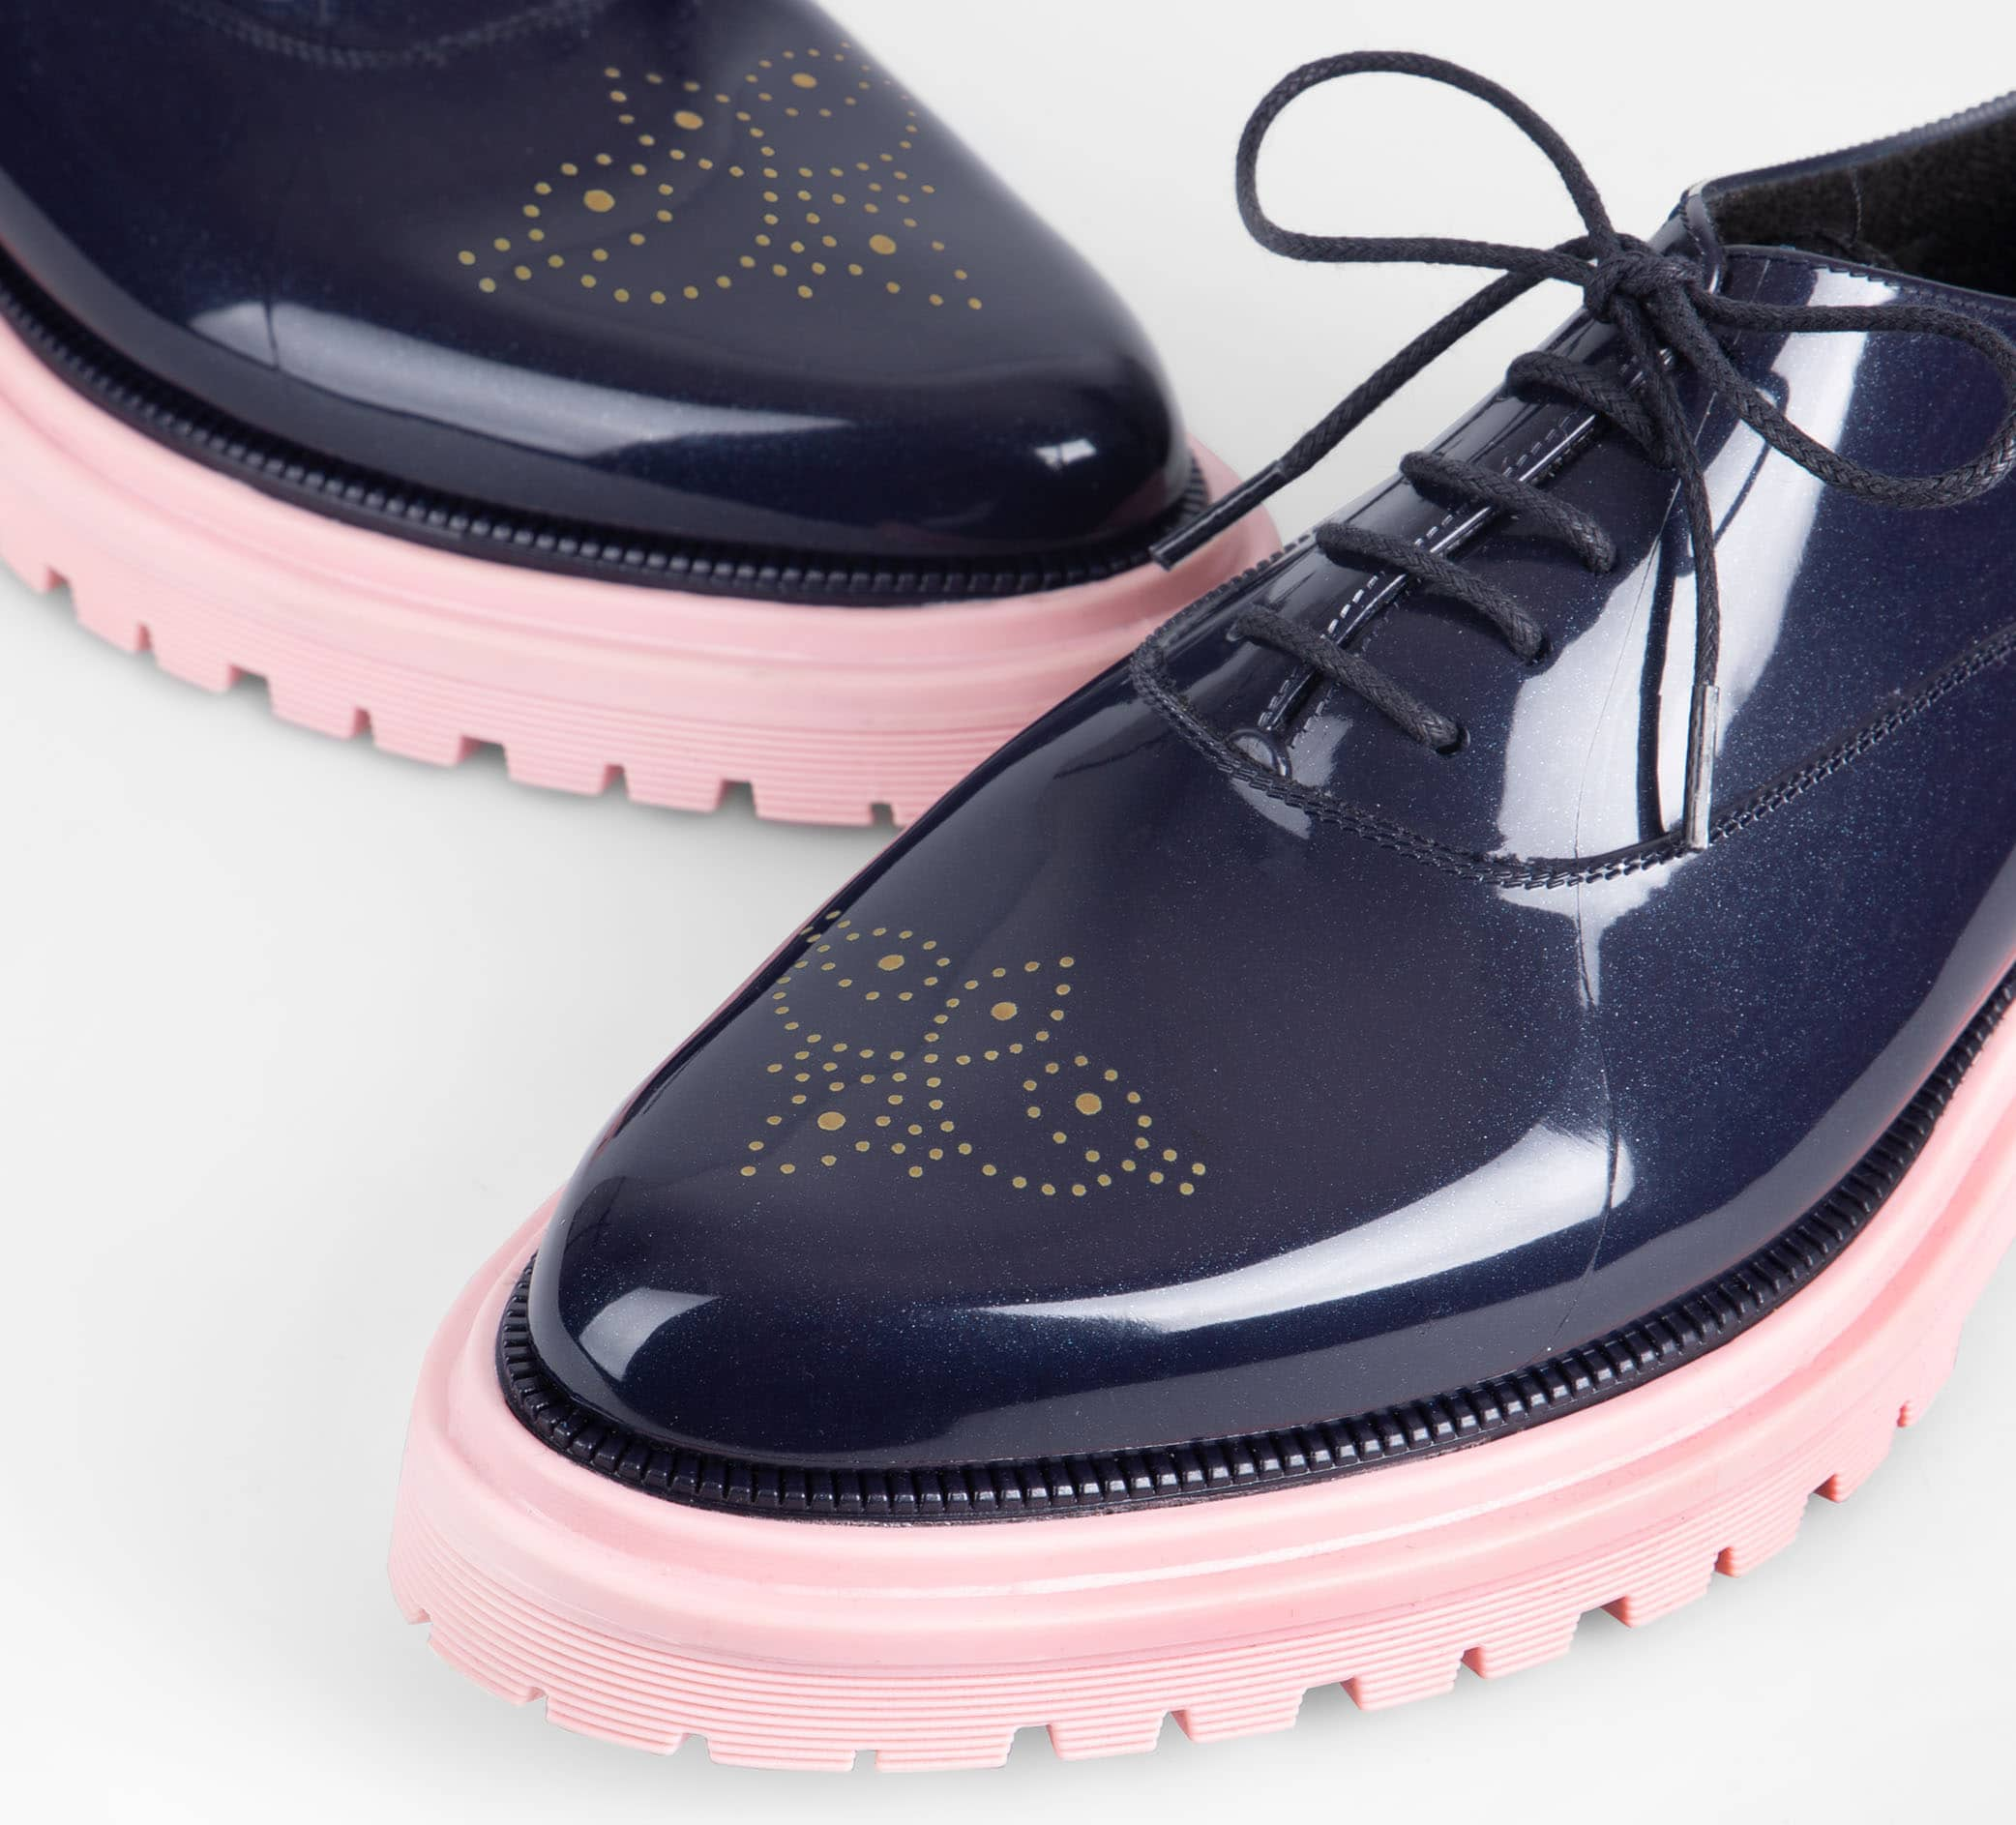 The Lemon Jelly oxford has a synthetic lining that will prevent feet from slipping and keep feet comfortable